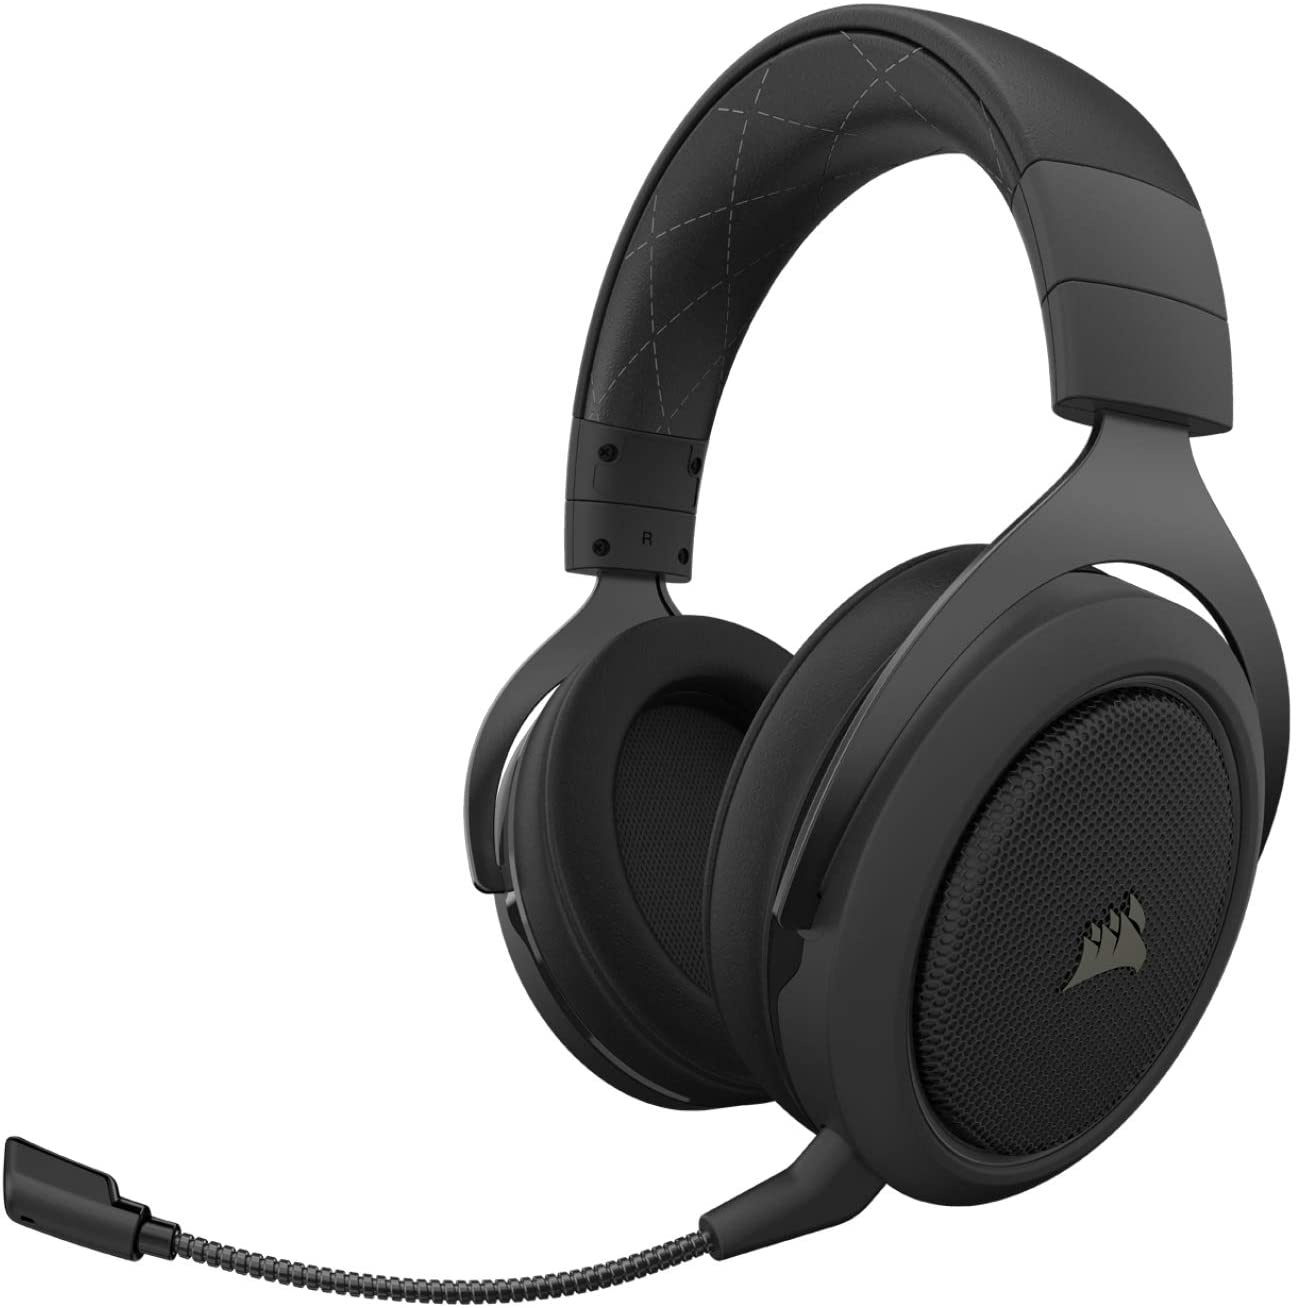 CORSAIR HS70 PRO WIRELESS GAMING HEADSET WITH 7.1 SURROUND SOUND